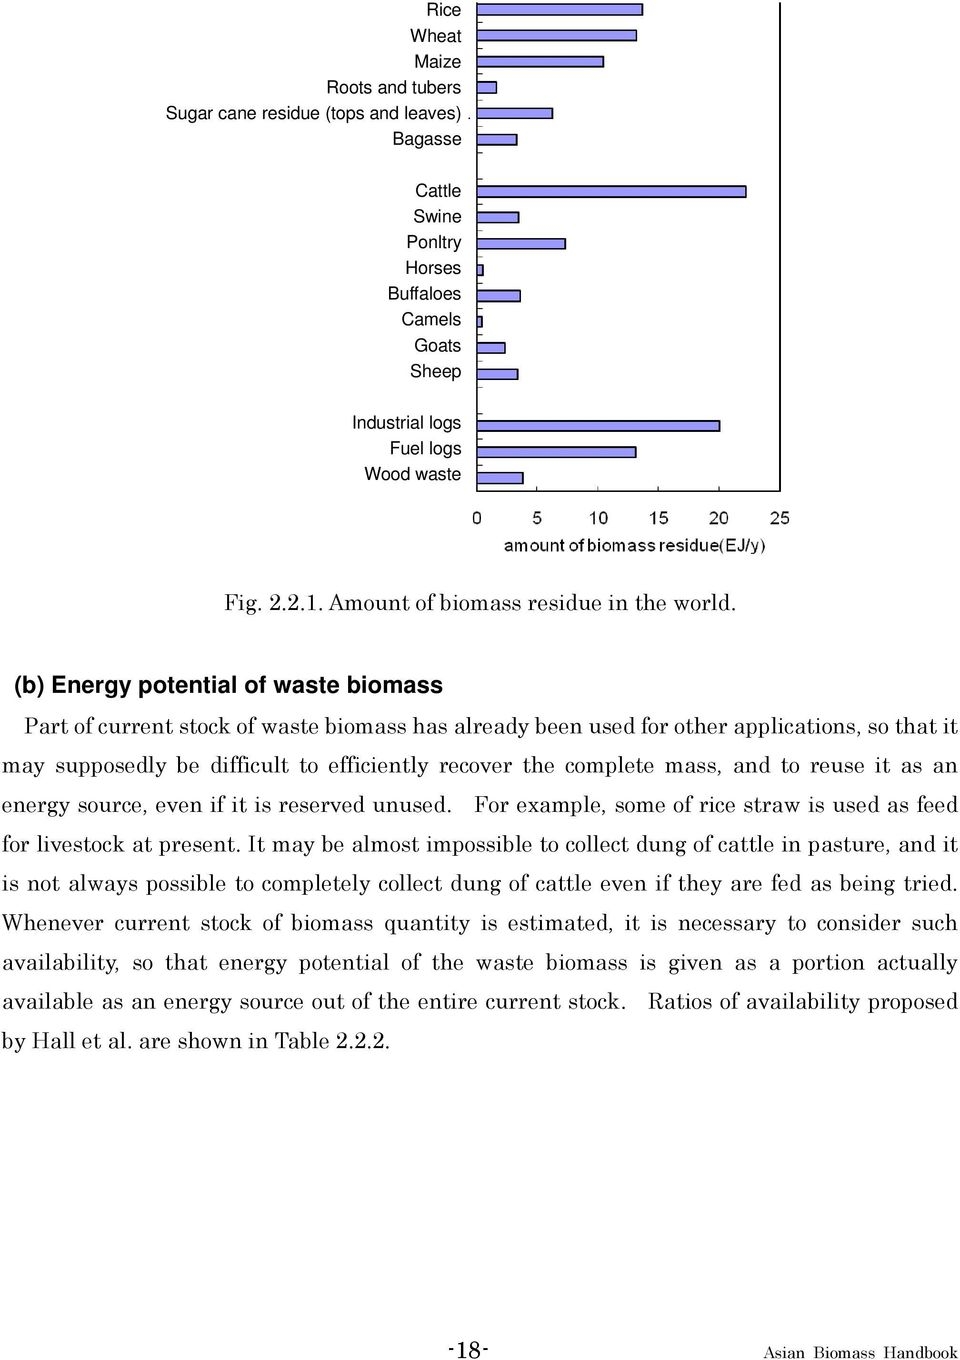 (b) Energy potential of waste biomass Part of current stock of waste biomass has already been used for other applications, so that it may supposedly be difficult to efficiently recover the complete